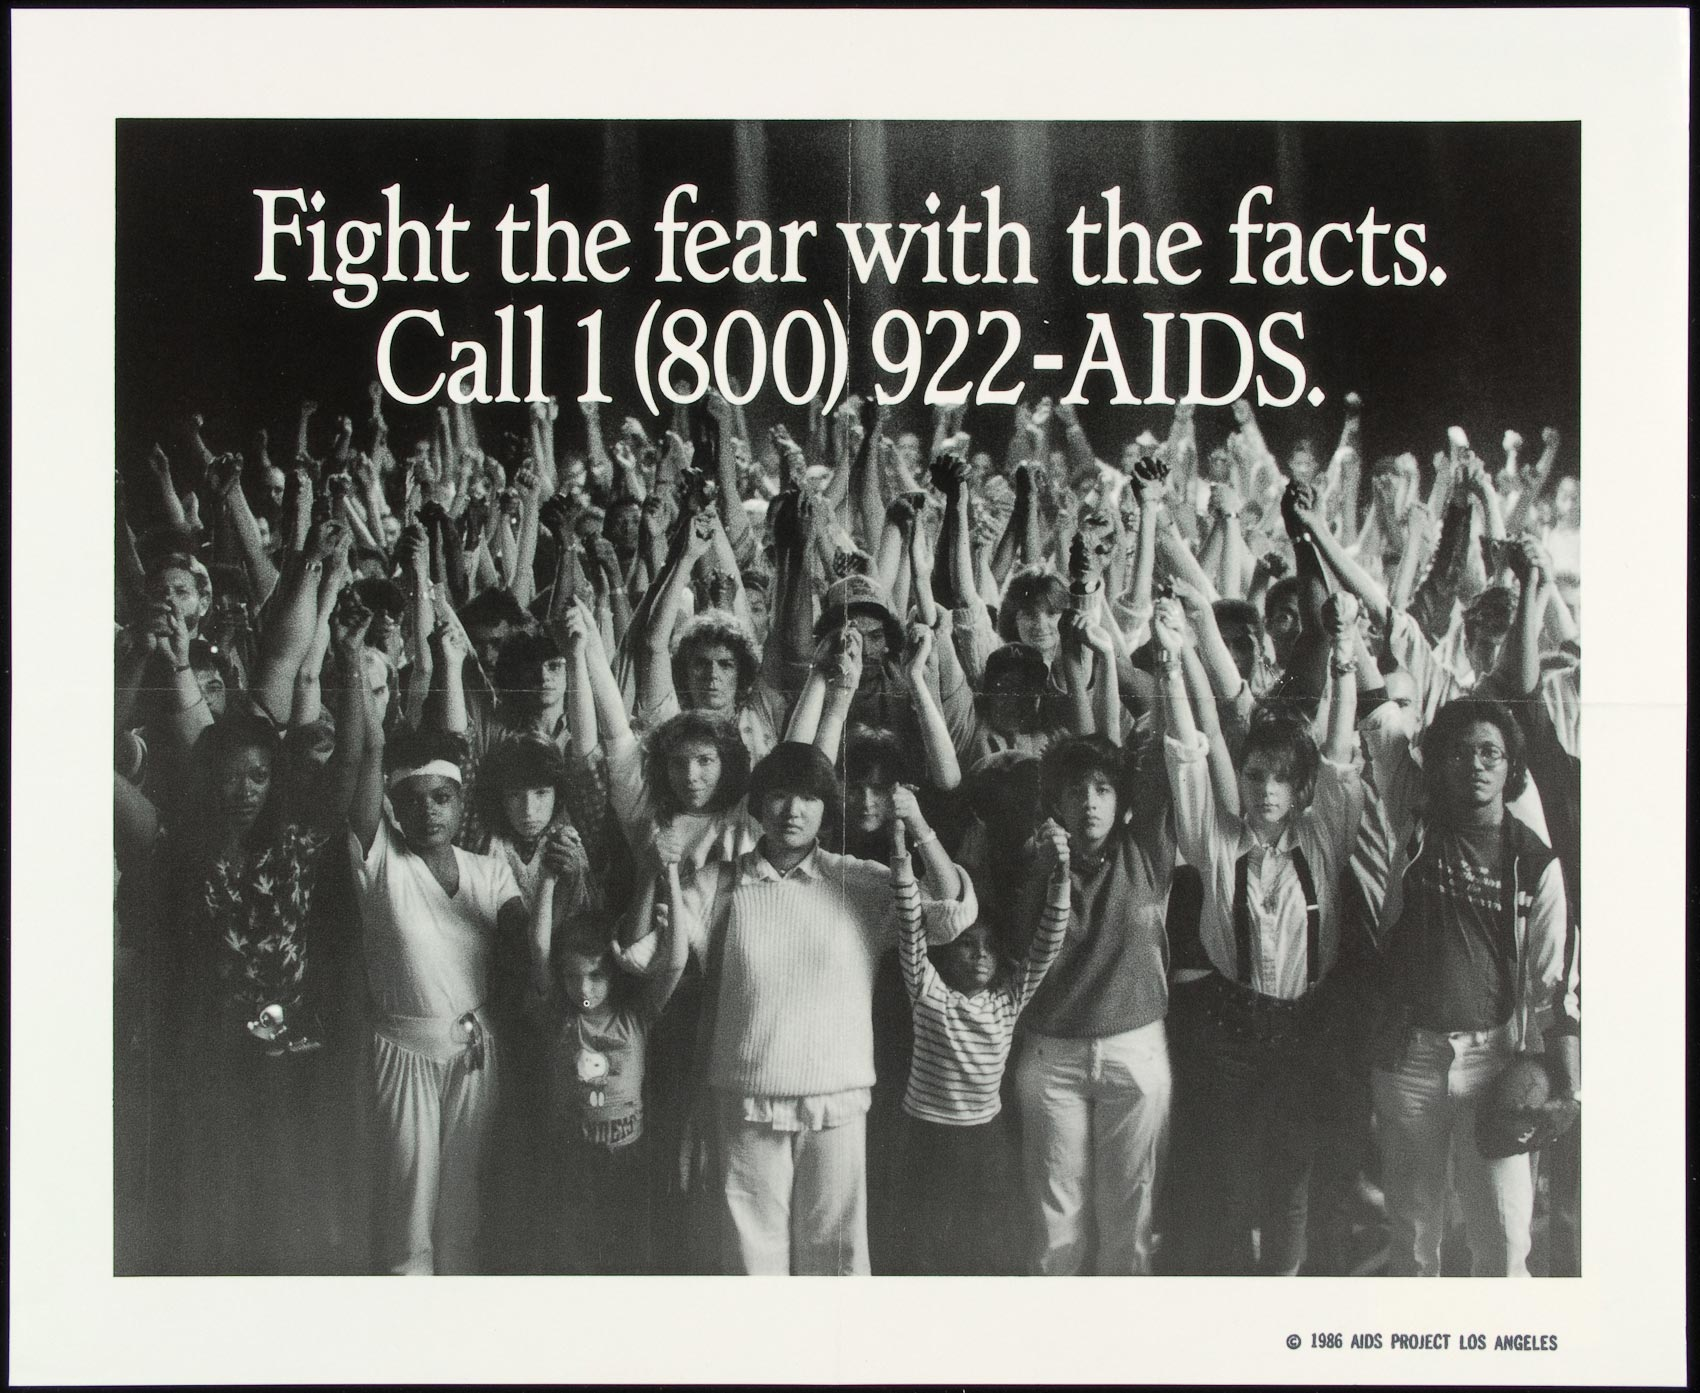 A 1986 poster produced by APLA in California.